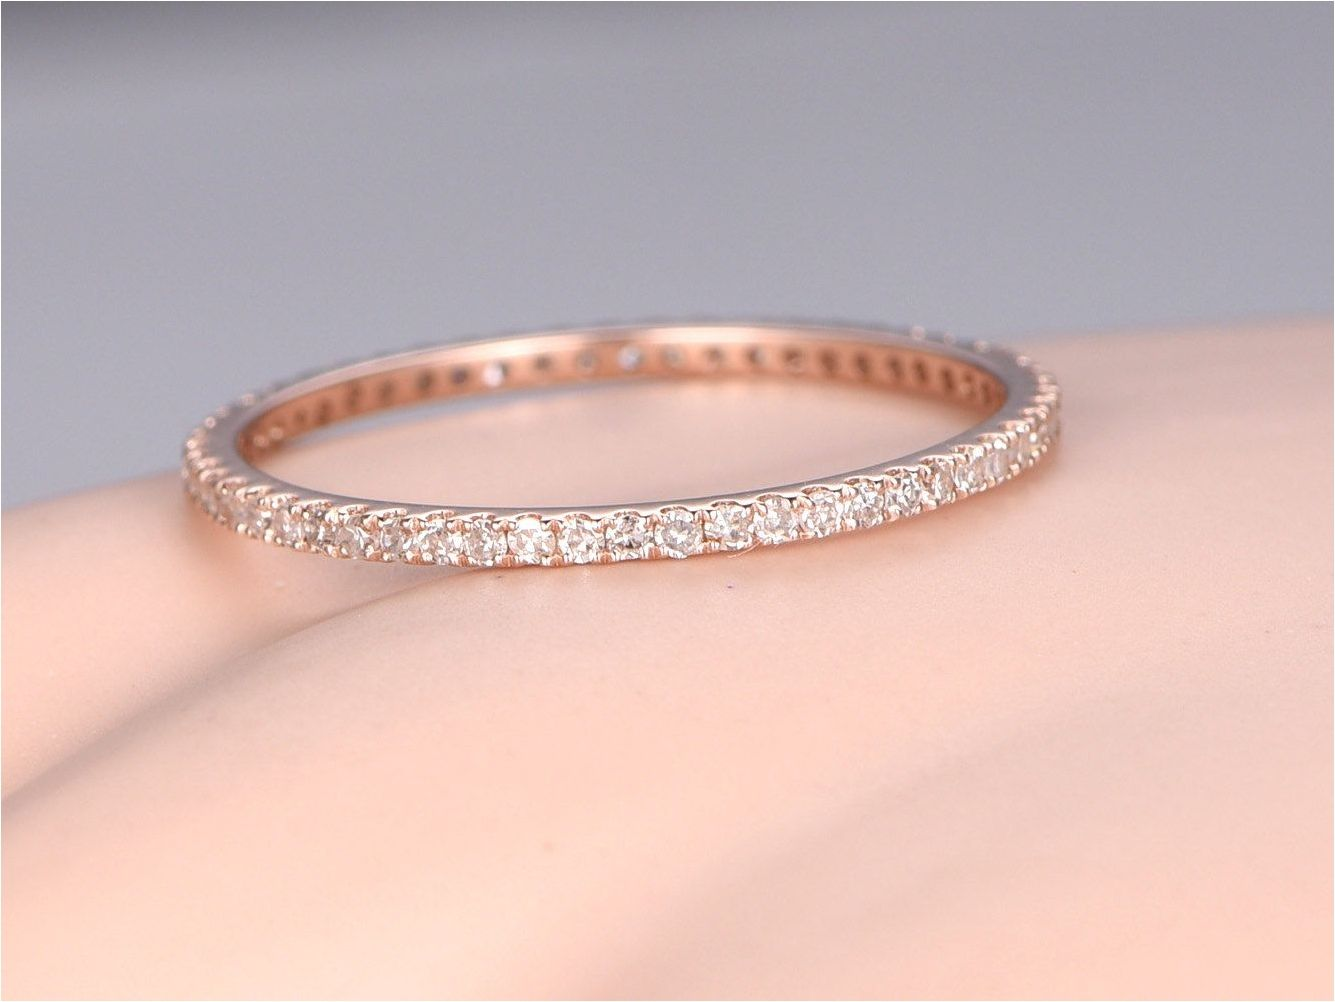 Wedding Rings Princess Cut. Express your own love storyline by using ...